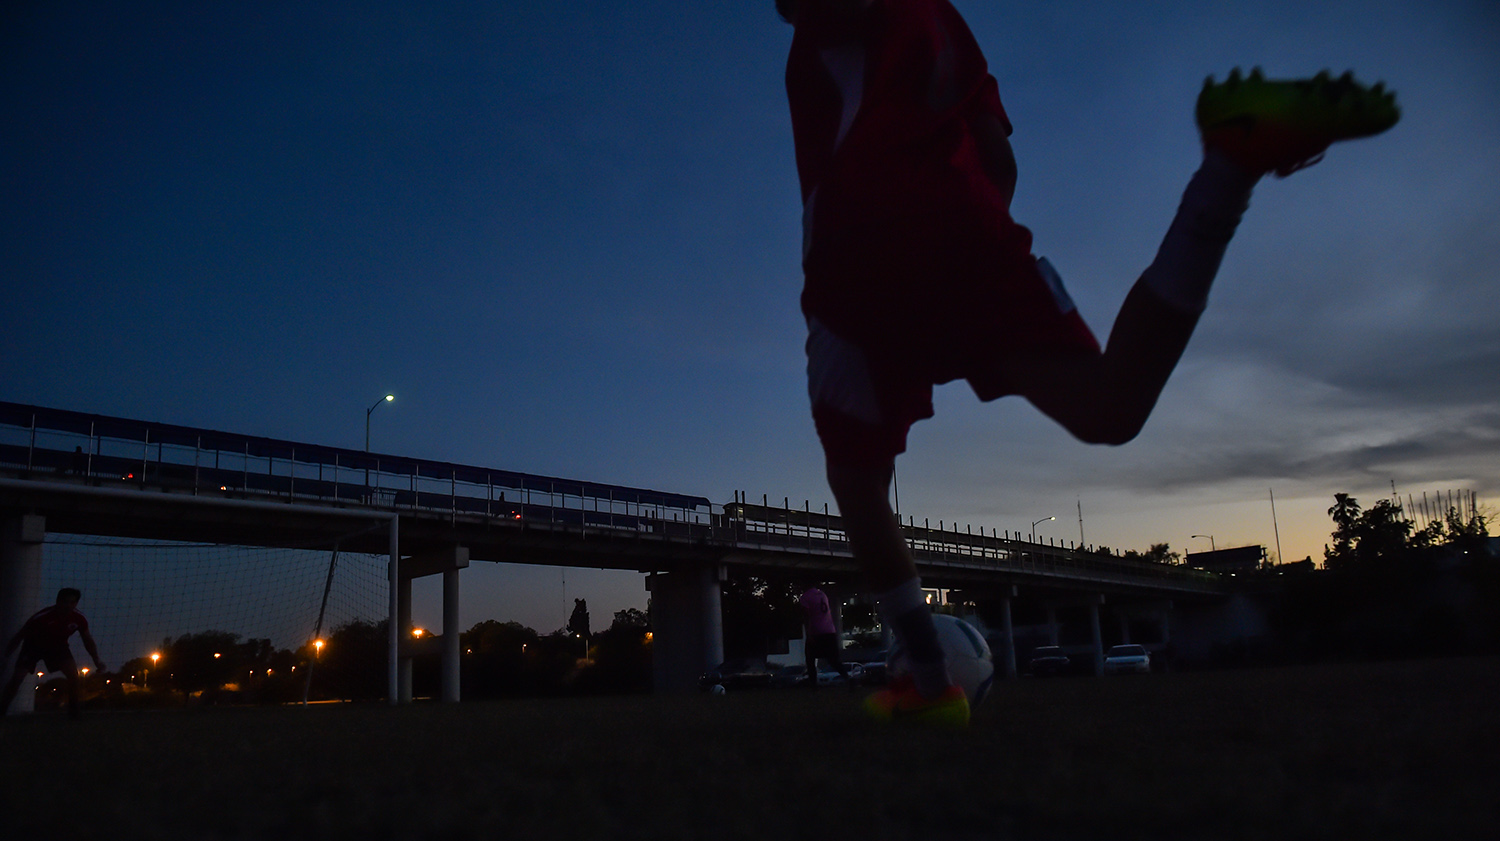 A soccer player on the Twin Cities FC team practices at a municipal park in Eagle Pass. Soccer players are concerned that a new wall could run through the city's only public soccer field.